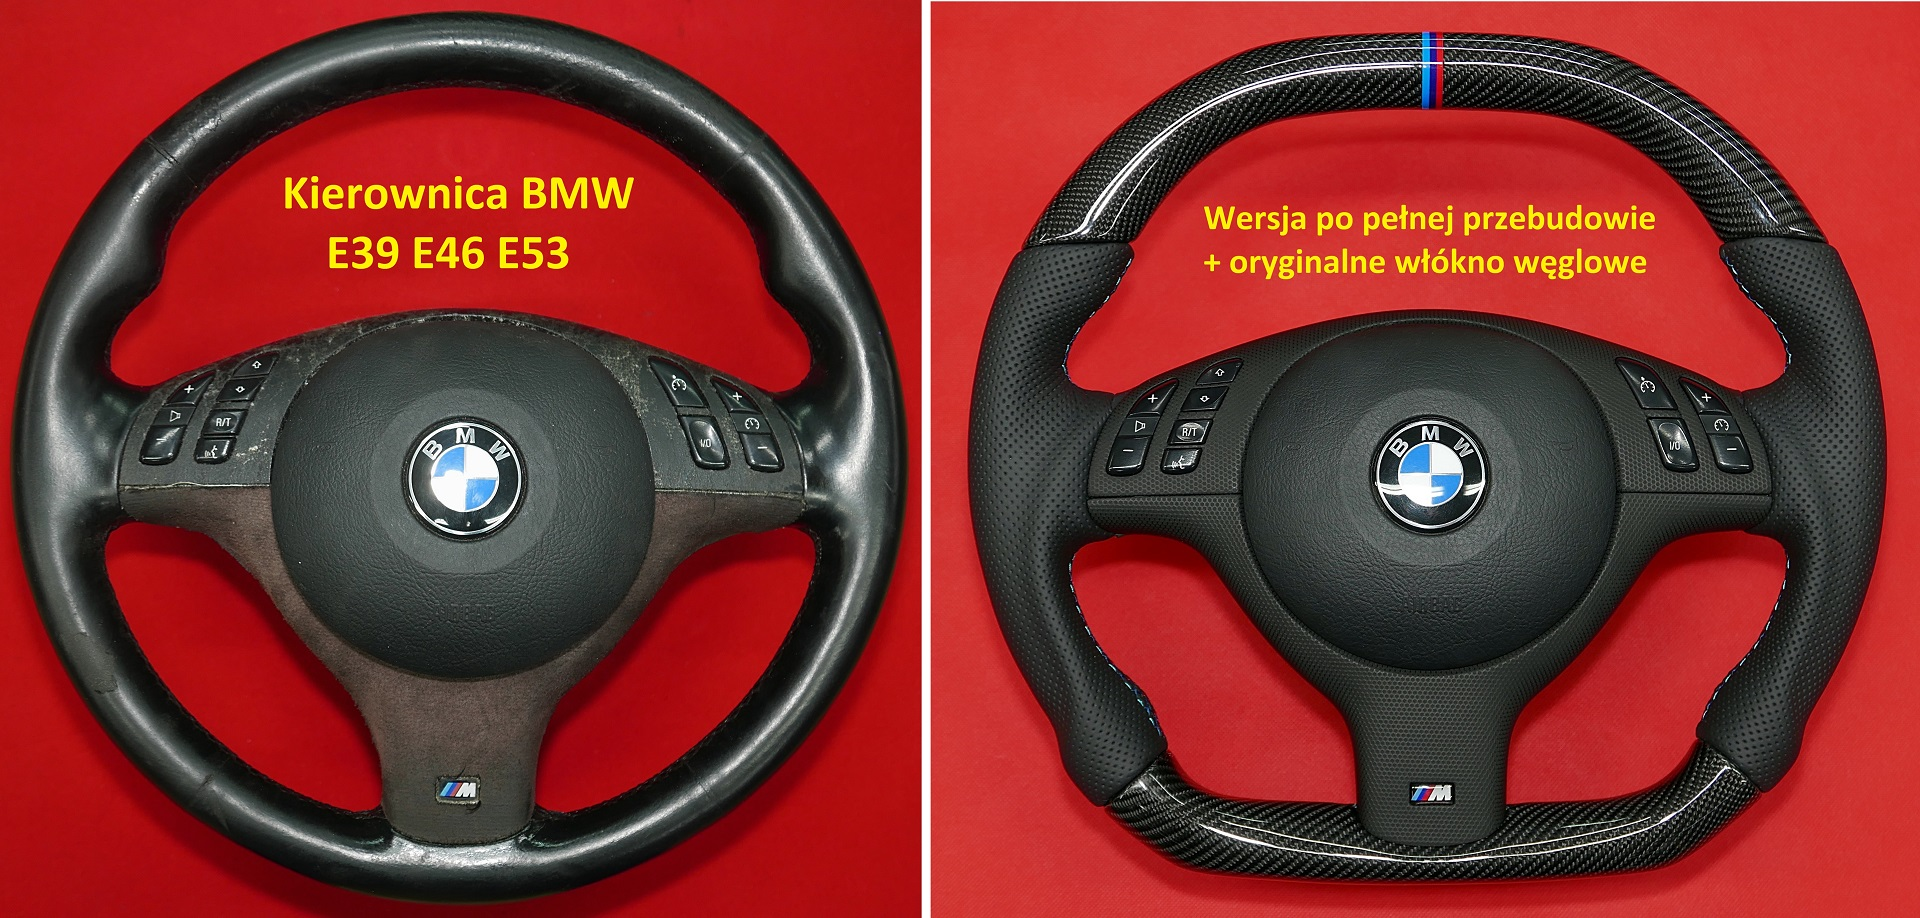 Carbon fiber steering wheel BMW E39 E46 E53 customs sport tunning